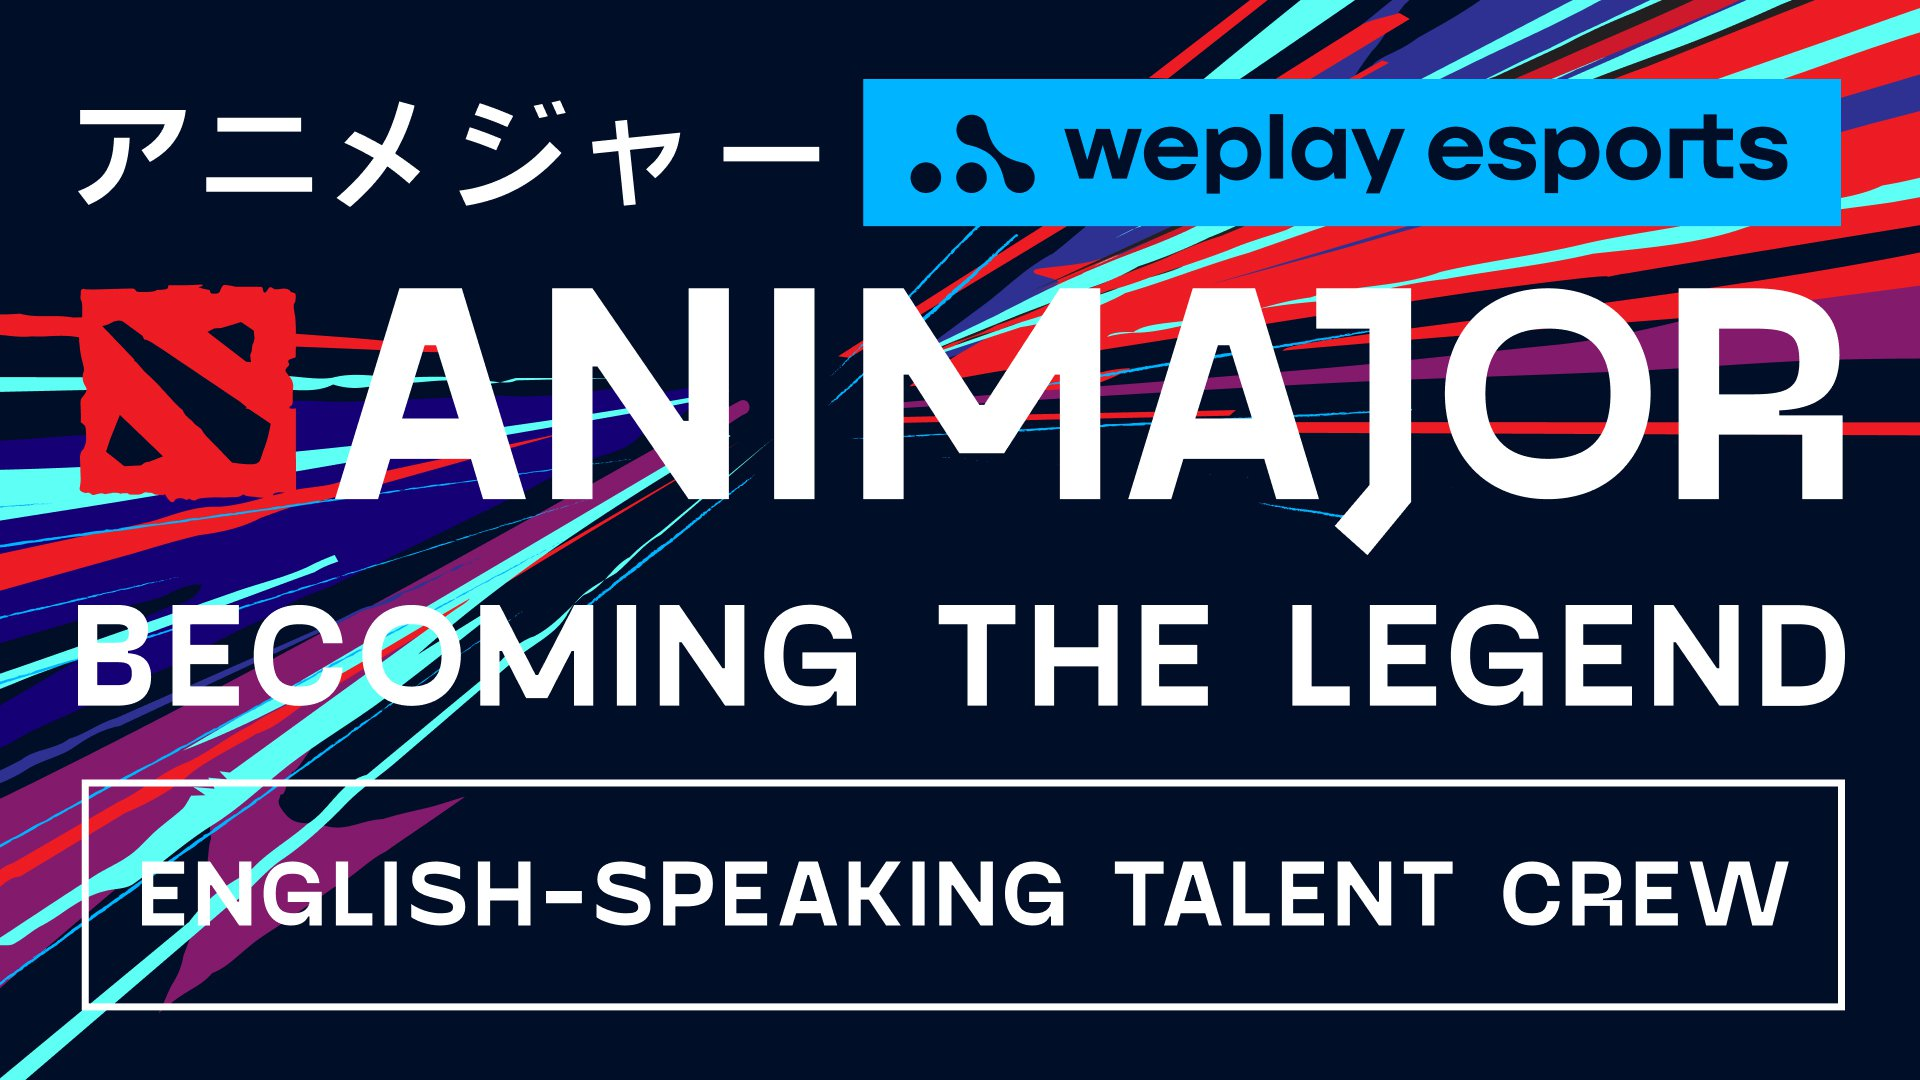 WePlay AniMajor English-speaking talent crew is announced. Image: WePlay Holding